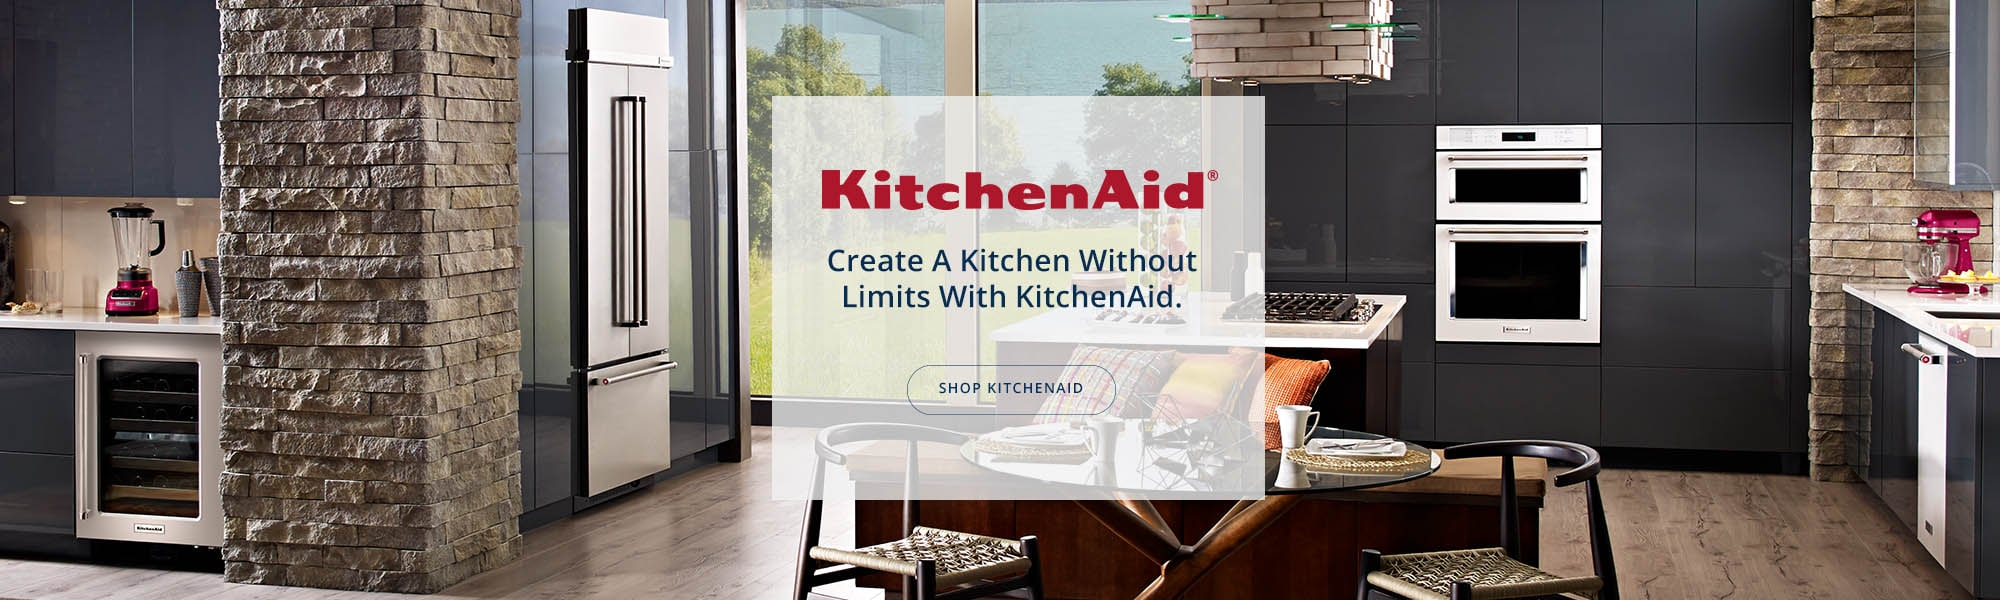 KitchenAid Slide